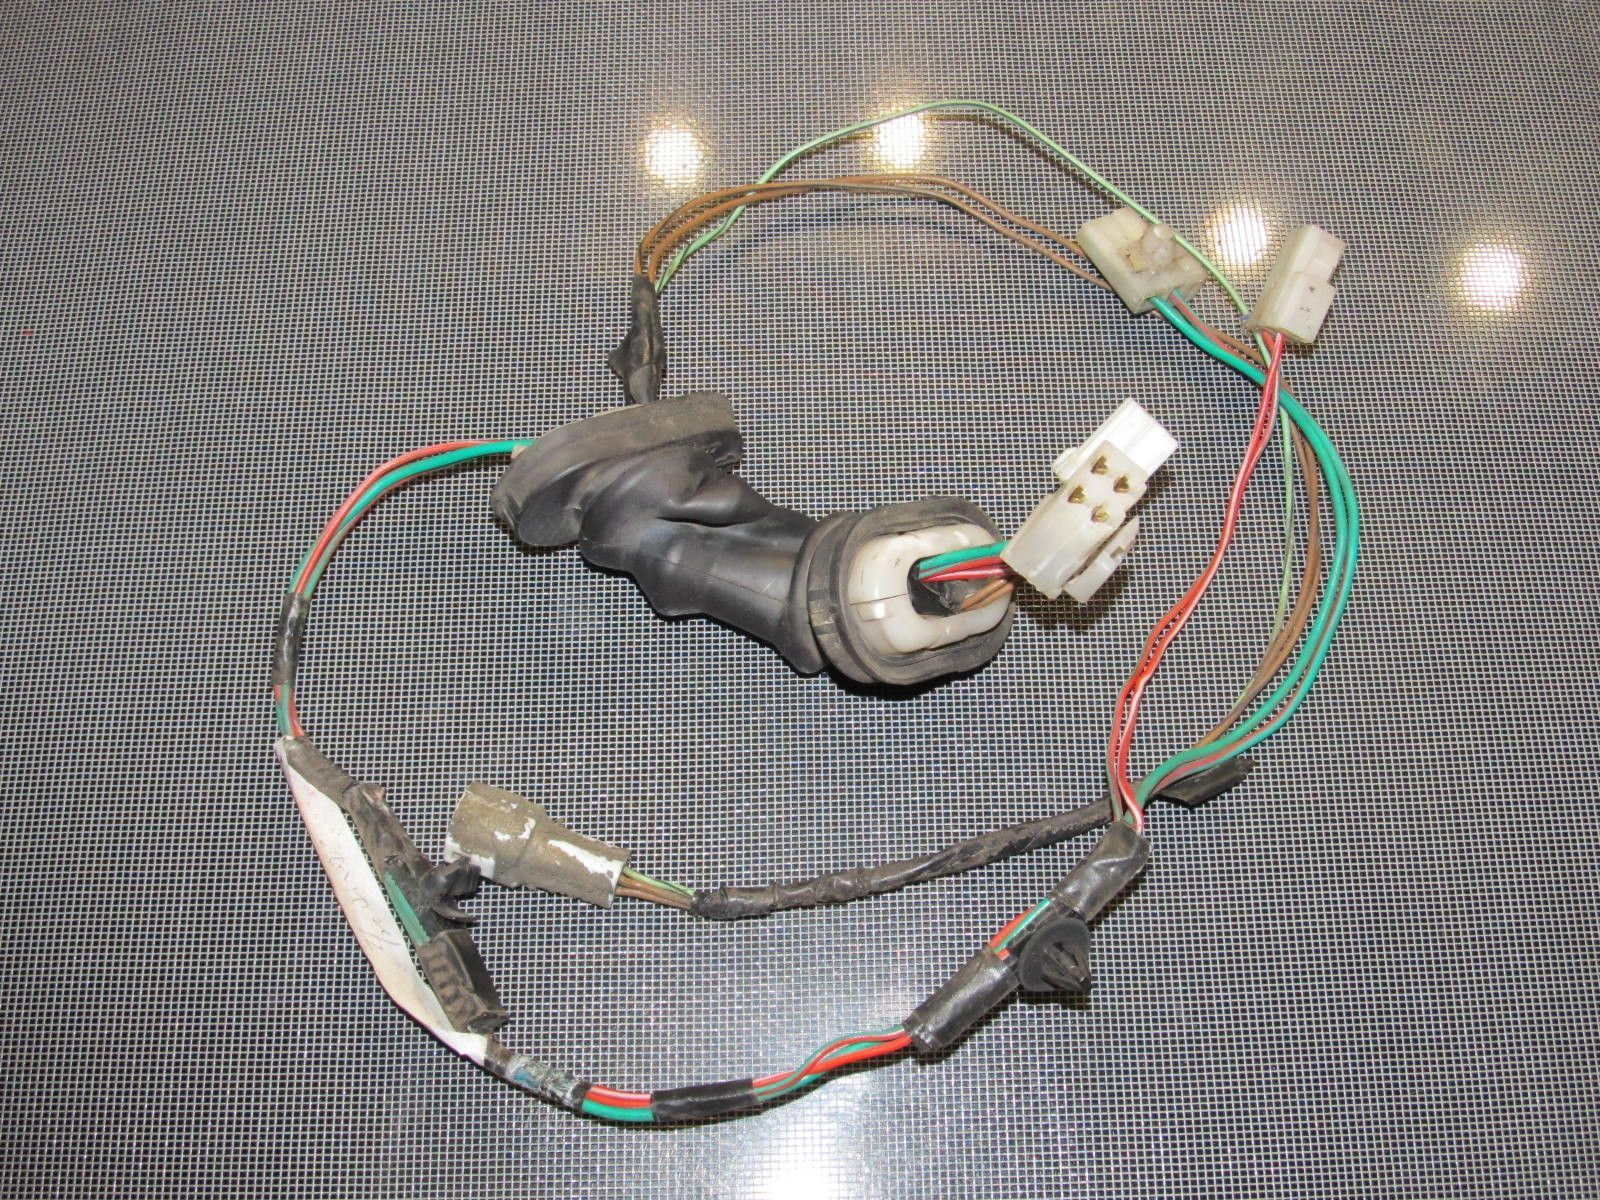 f488122a081fbb18e48bc9ea57b83783 90 93 miata oem door wiring harness left products door wiring harness at crackthecode.co